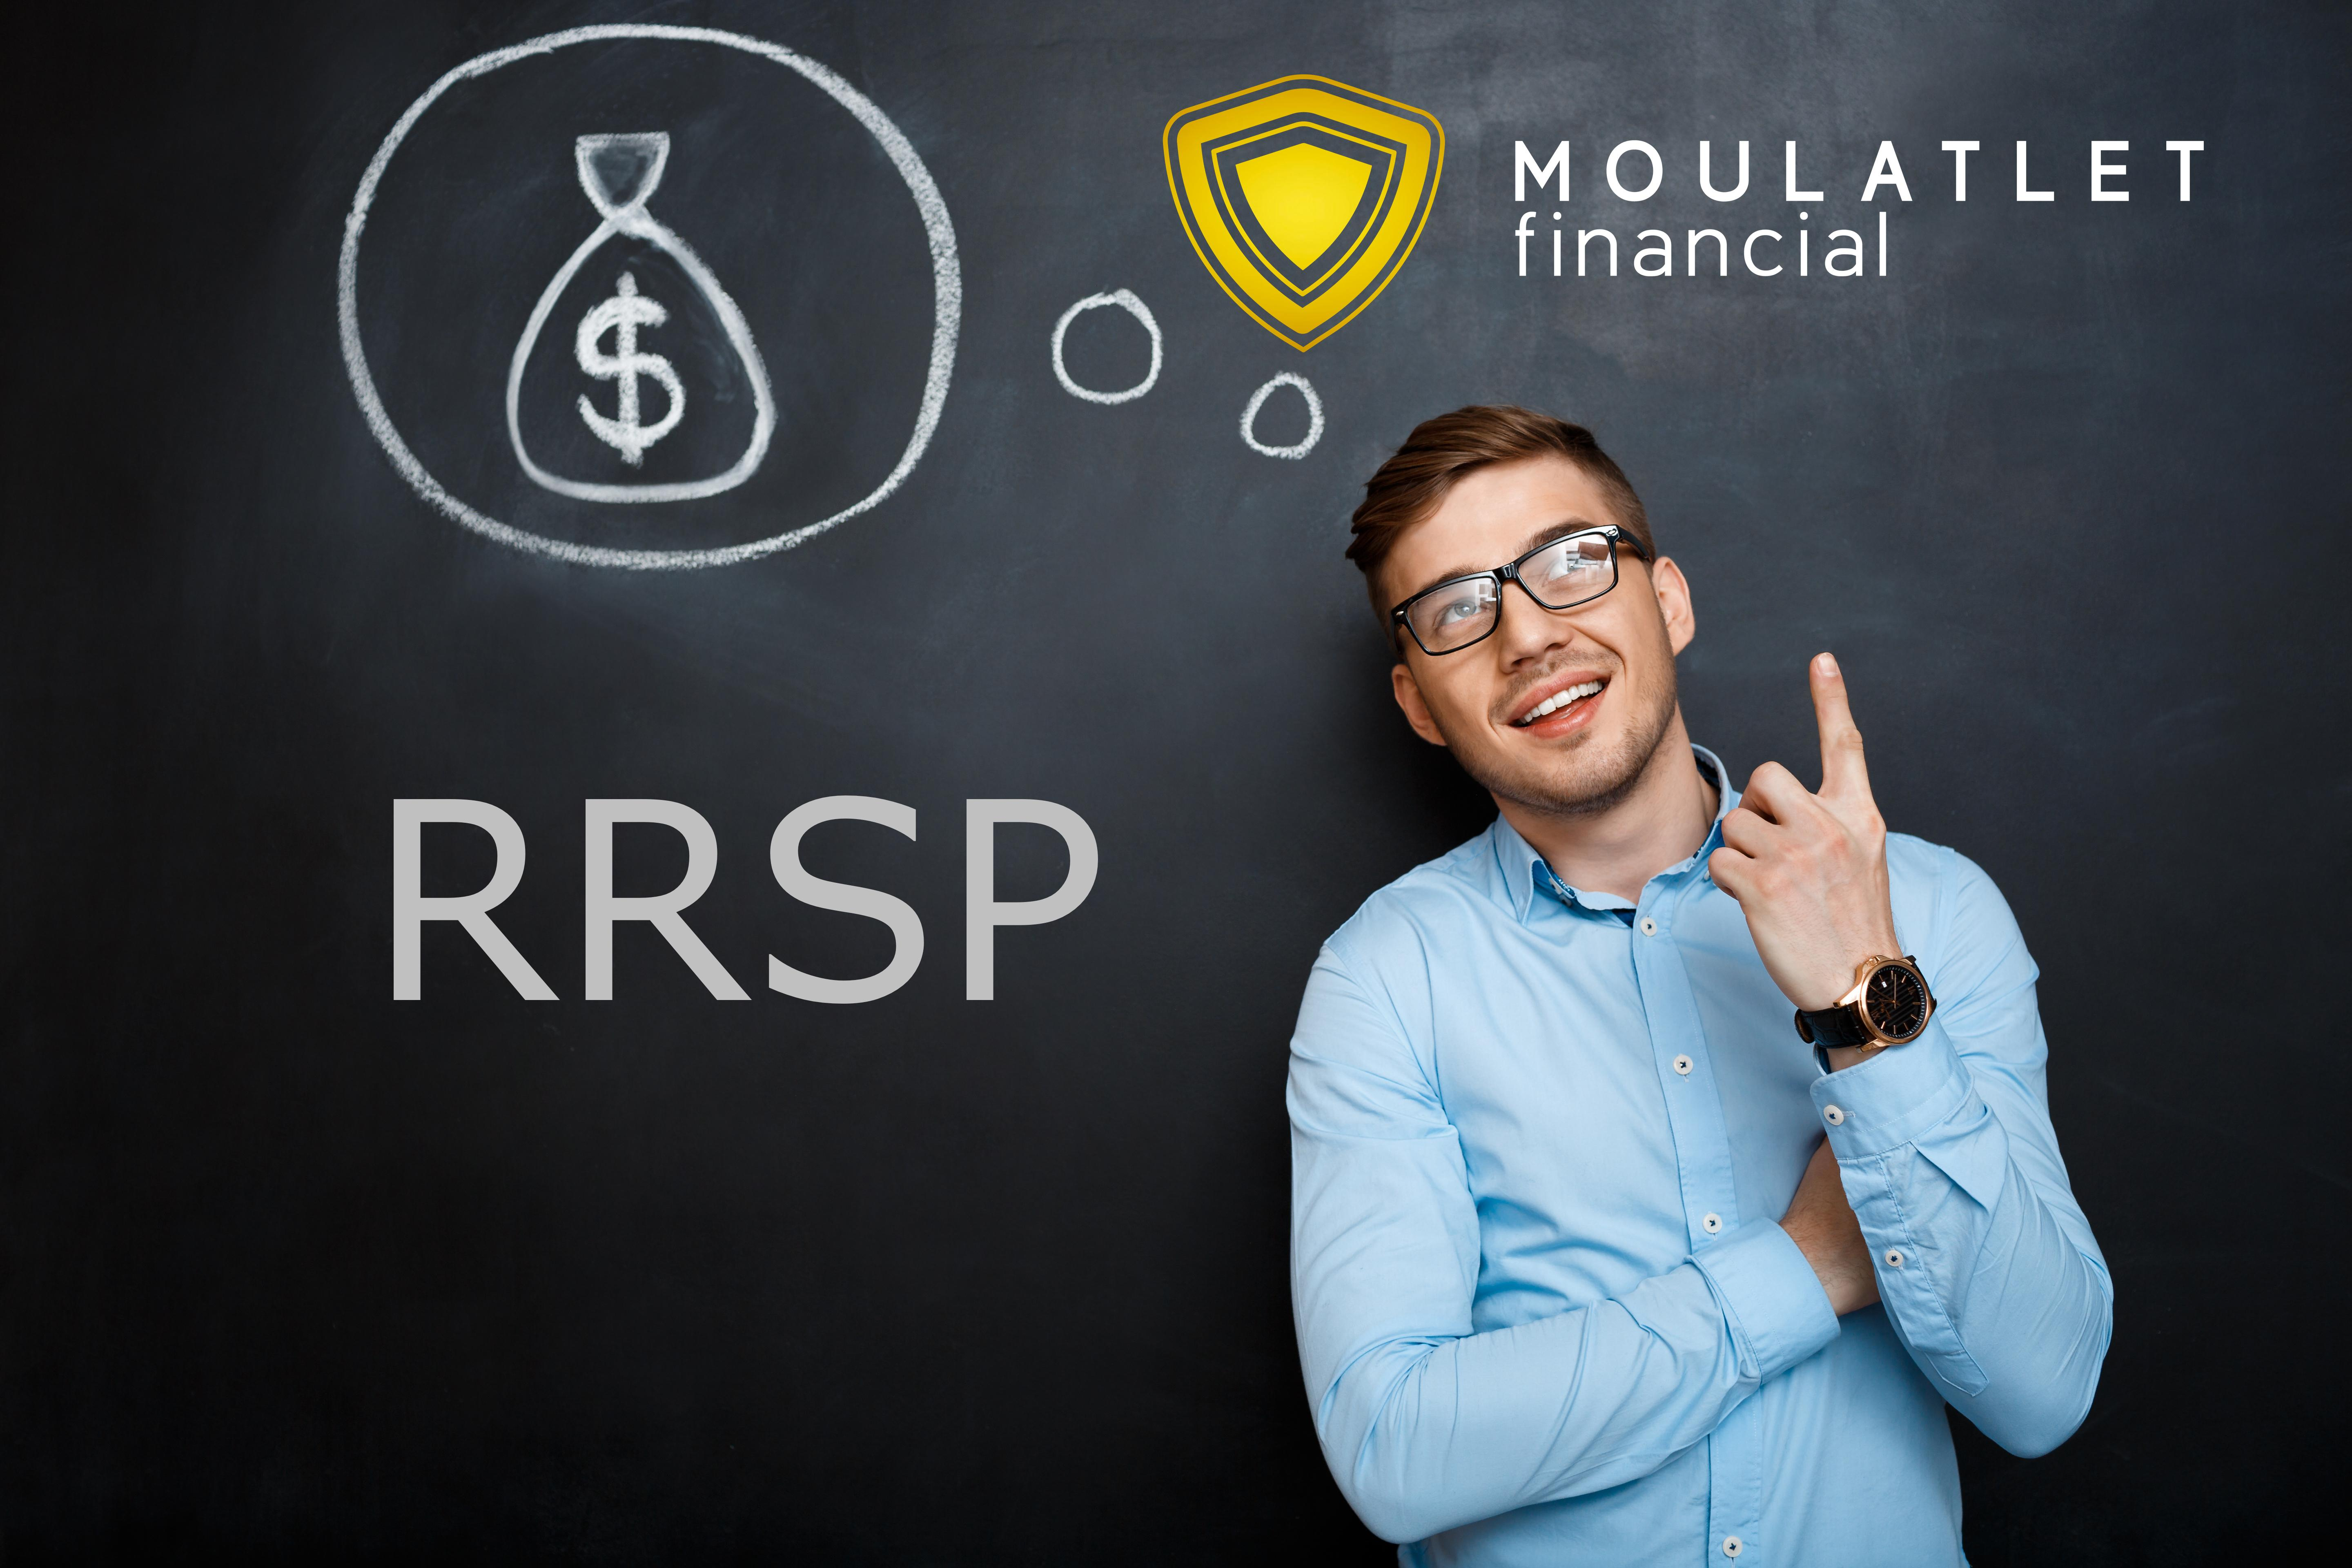 Do you know how RRSP works? Thumbnail